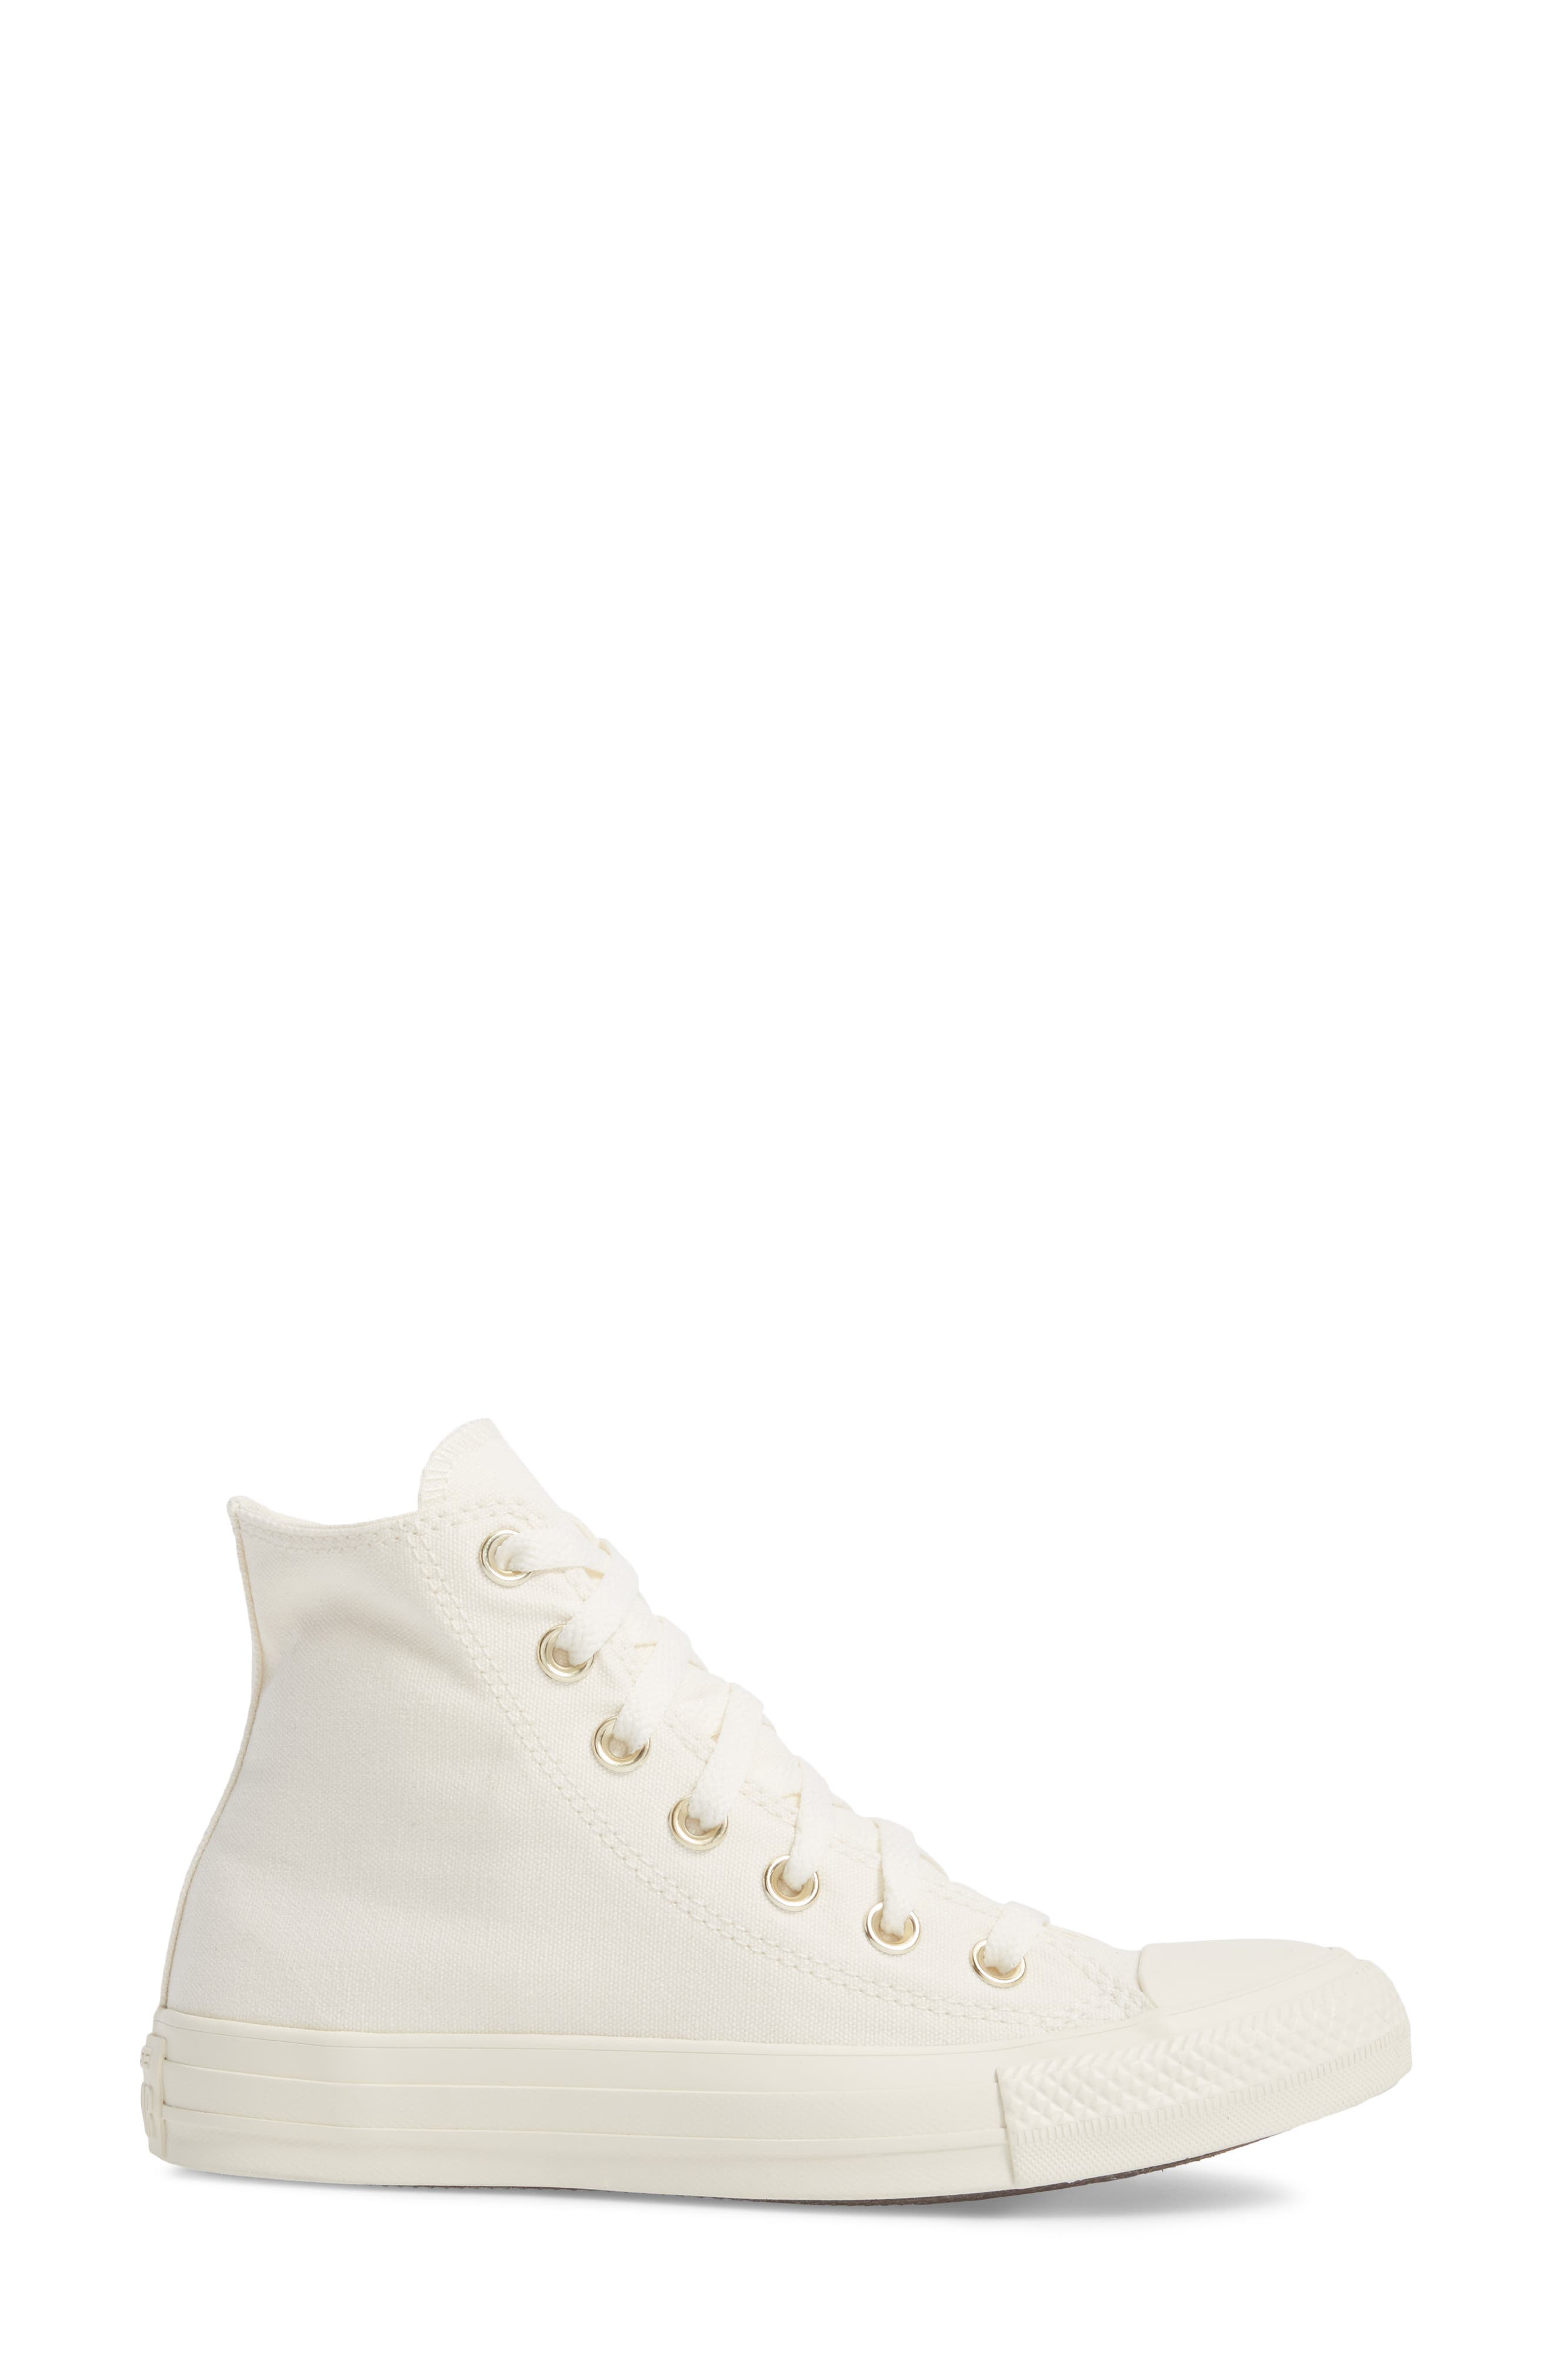 Chuck Taylor<sup>®</sup> All Star<sup>®</sup> Hi Sneaker,                             Alternate thumbnail 3, color,                             100